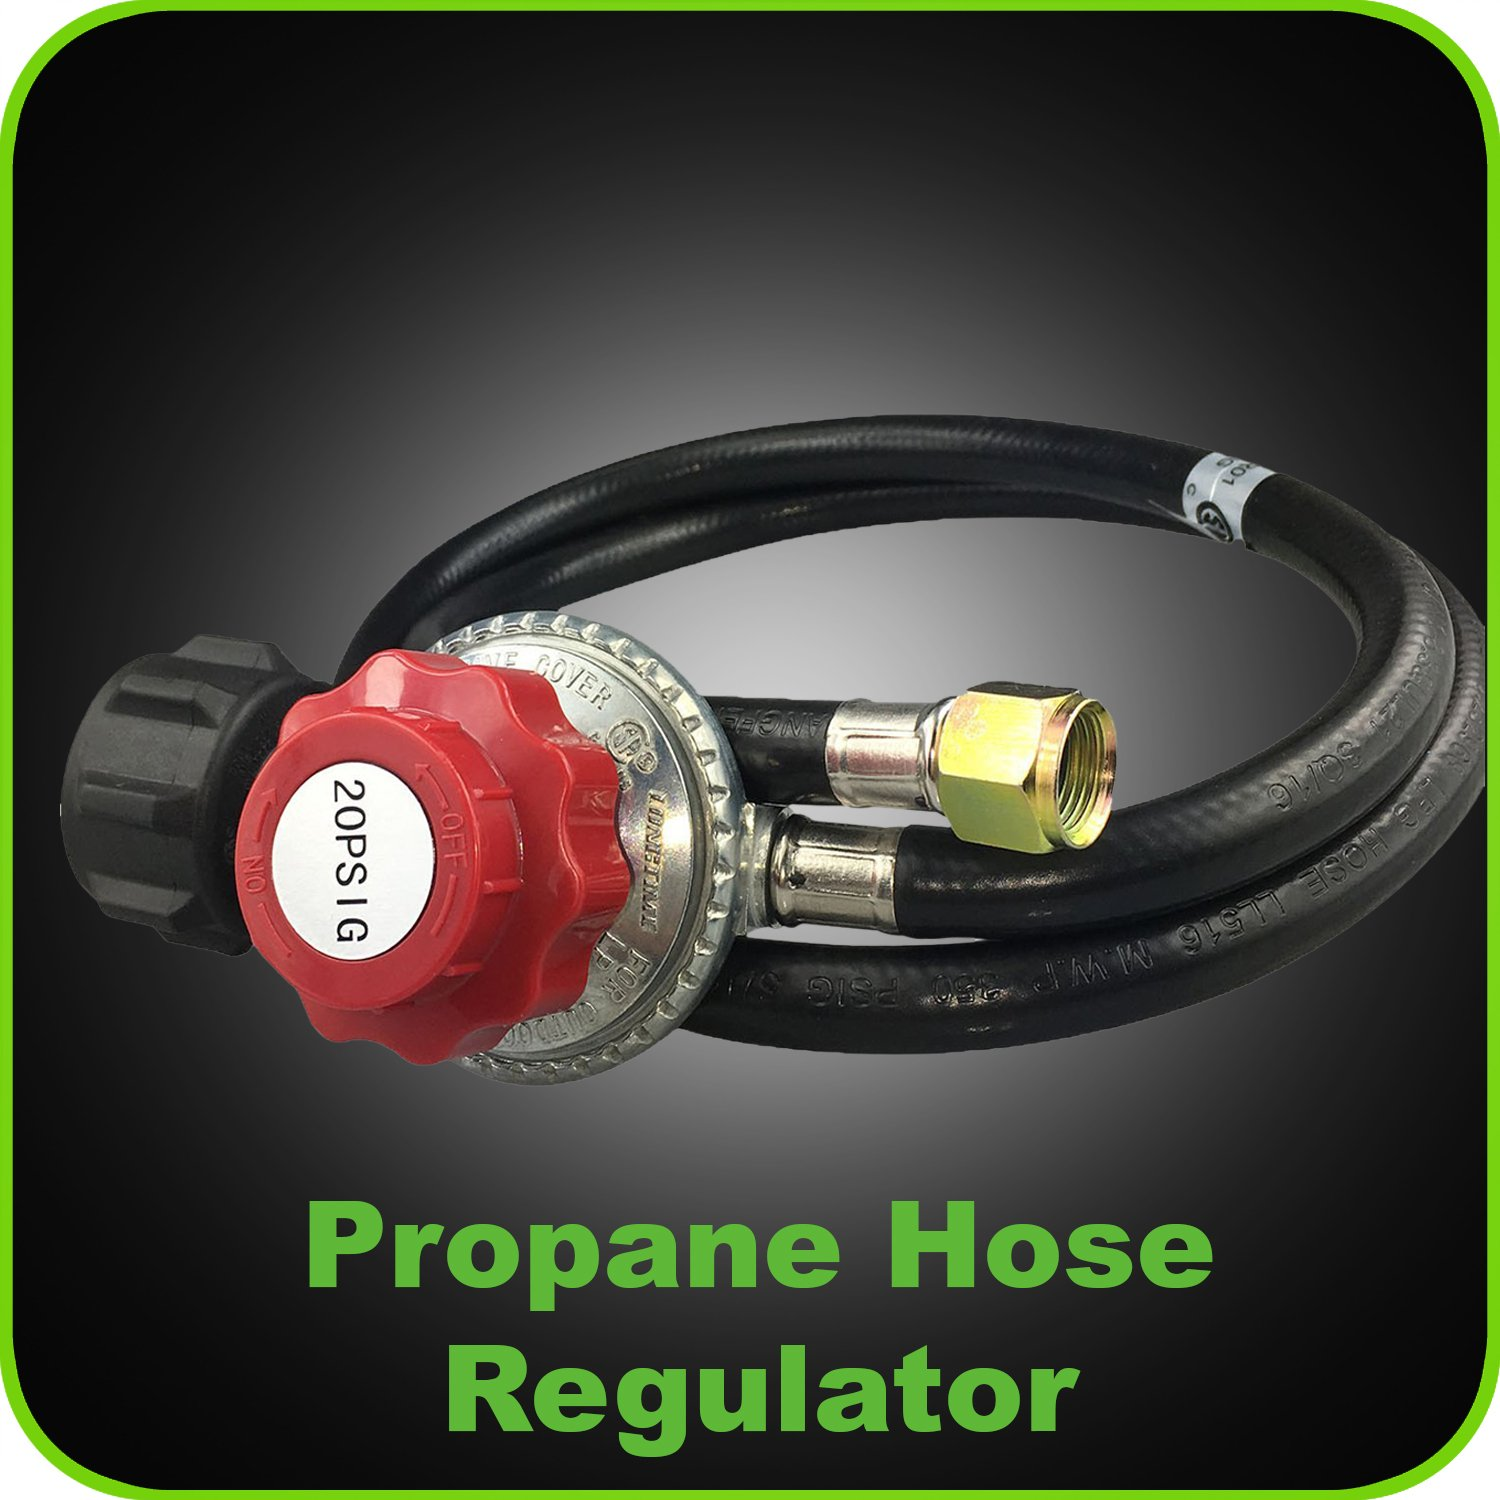 Propane Regulator Adjustable 4 Foot 0-20 PSI - Gas Grill replacement Hose for Fire Pit and LP Gas Grill - Outdoor and Indoor Cooking